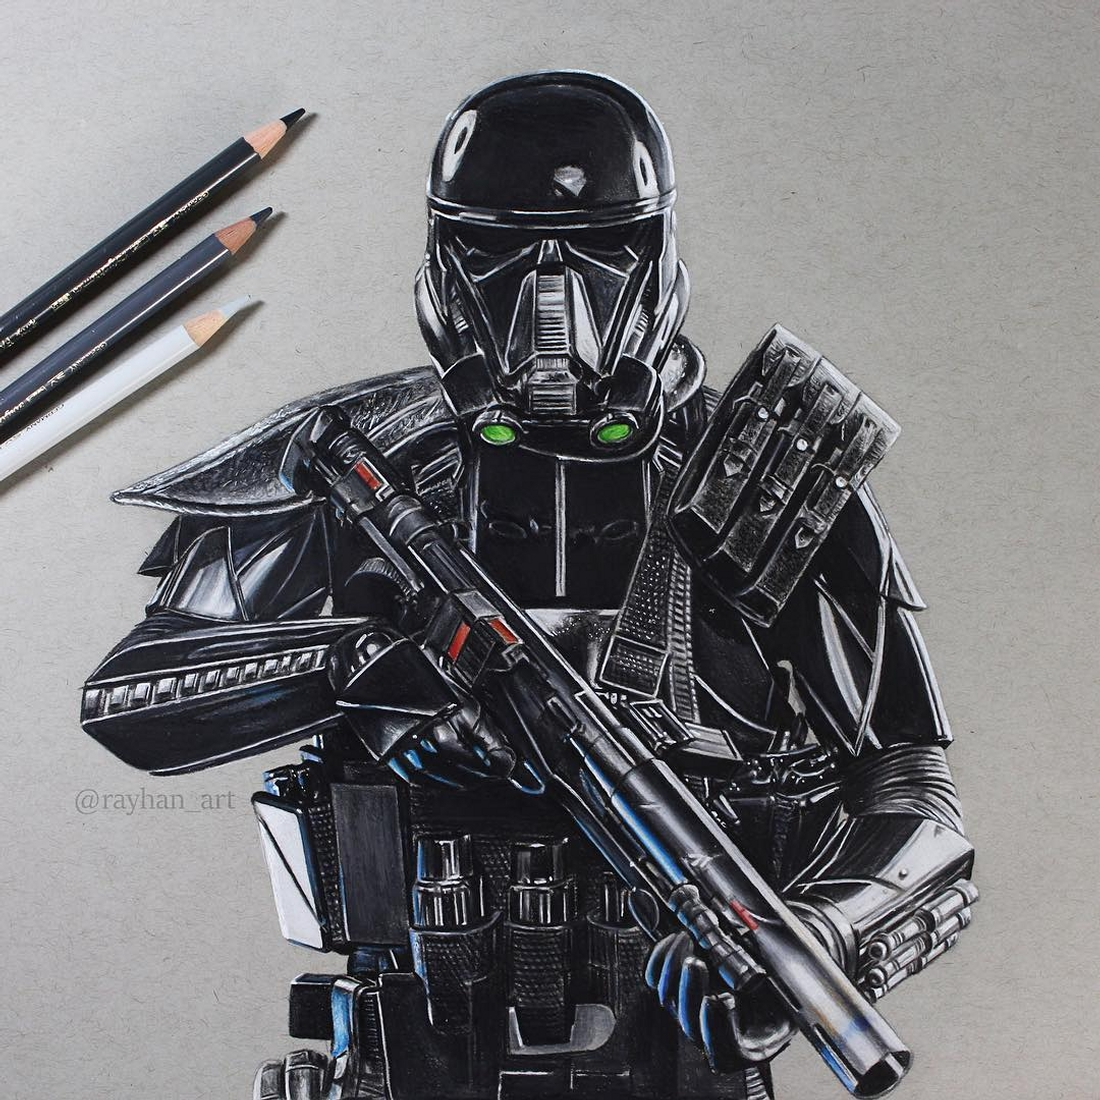 04-Death-Trooper-Rayhan-Miah-Movie-Characters-Drawings-and-More-www-designstack-co